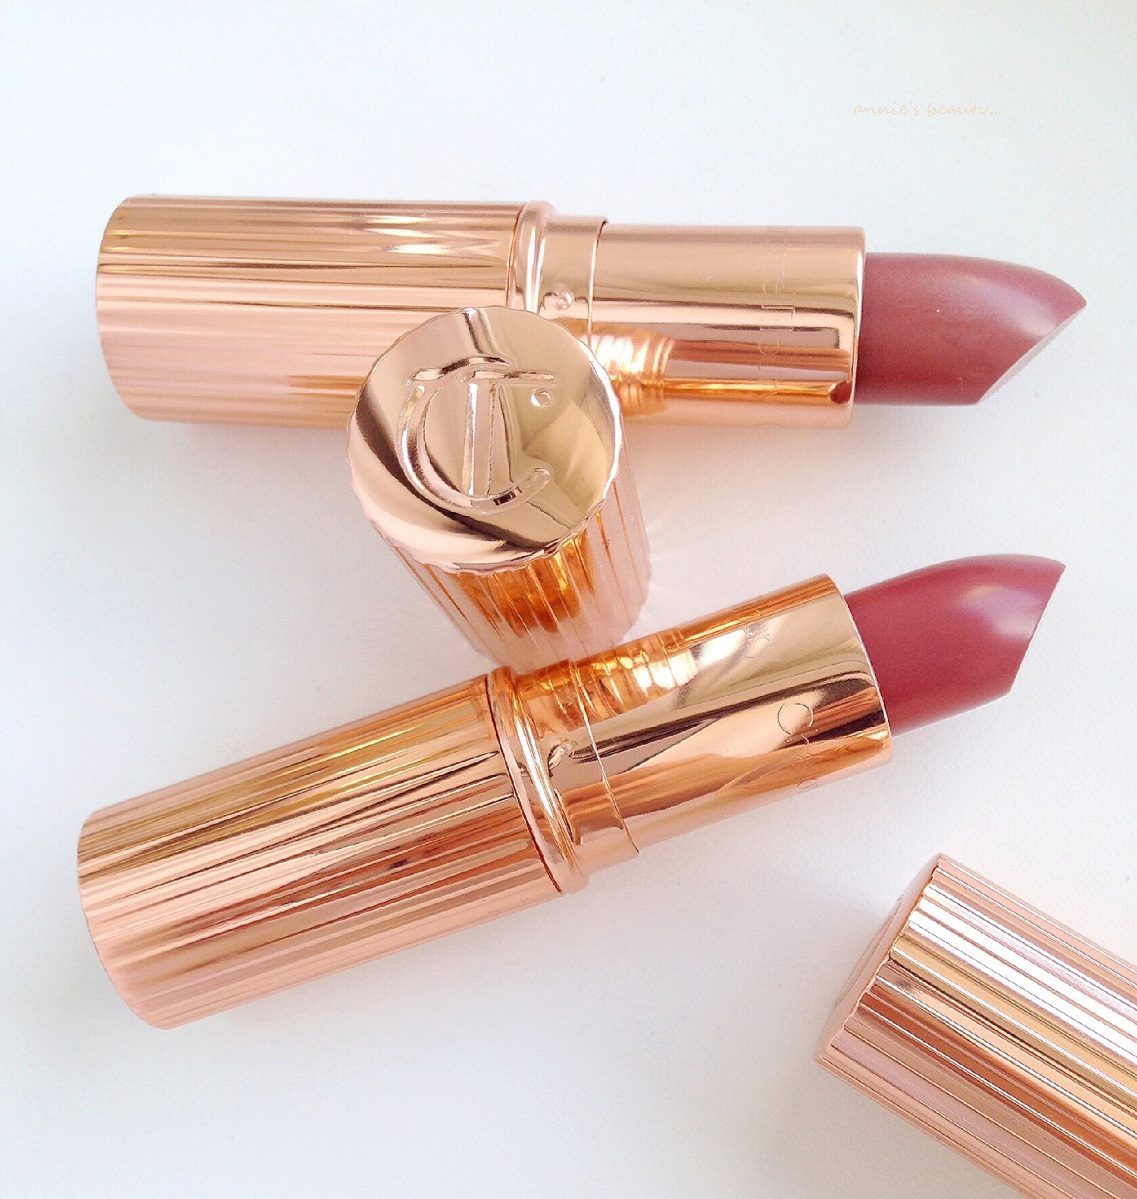 Loving Nudes #5: CHARLOTTE TILBURY's Confession, Stoned Rose and the infamous Lip Cheat Lip Liner in Pillow Talk